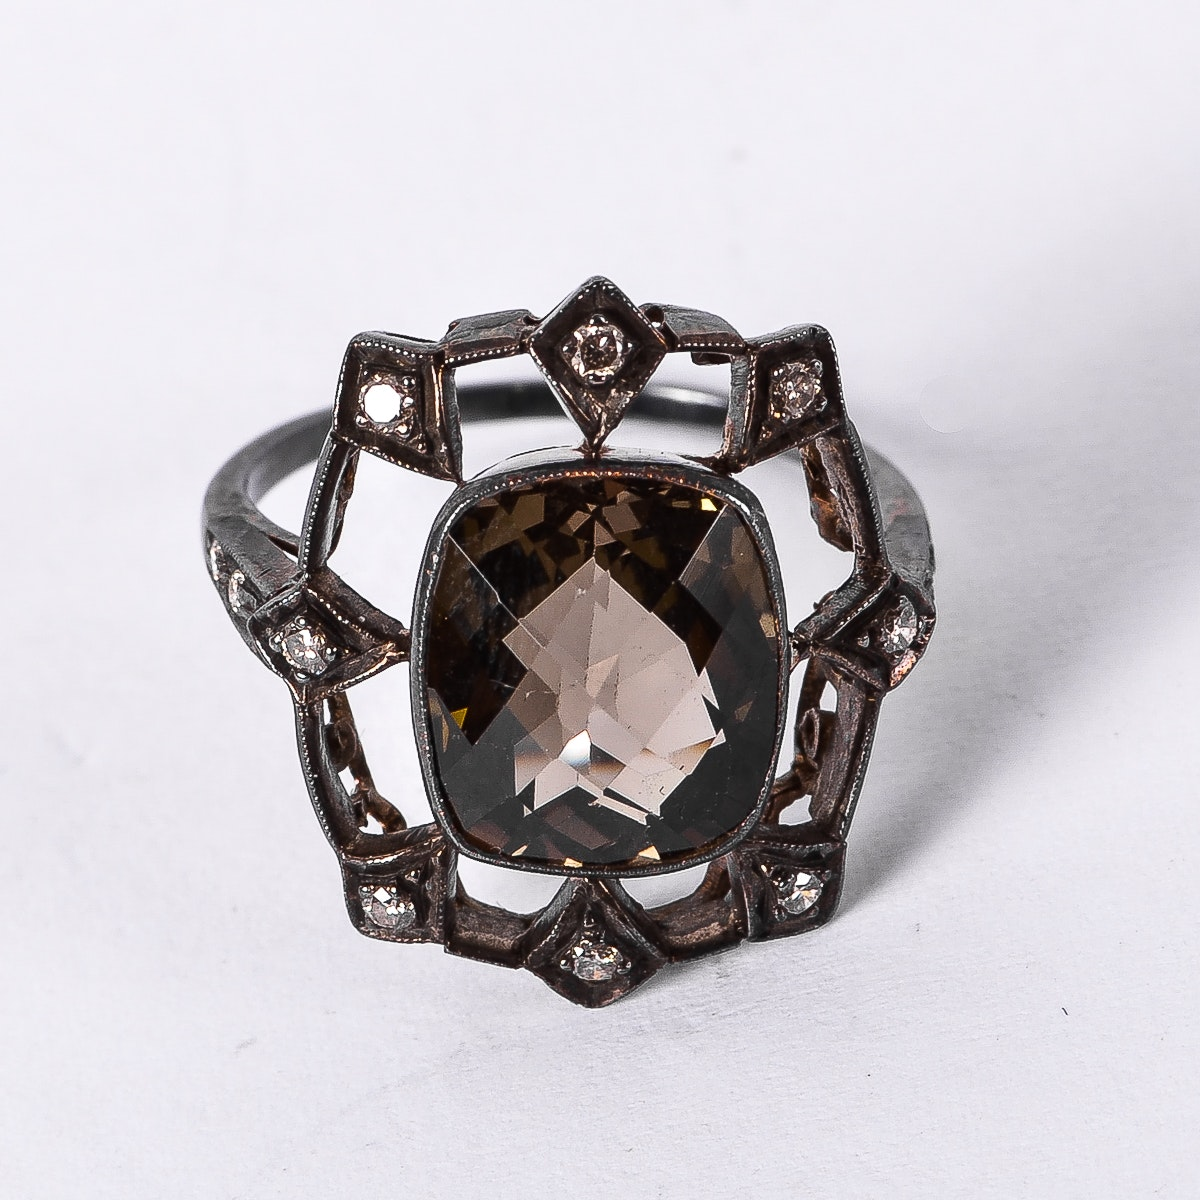 Oxidized 18K White Gold, Citrine, and Diamond Ring